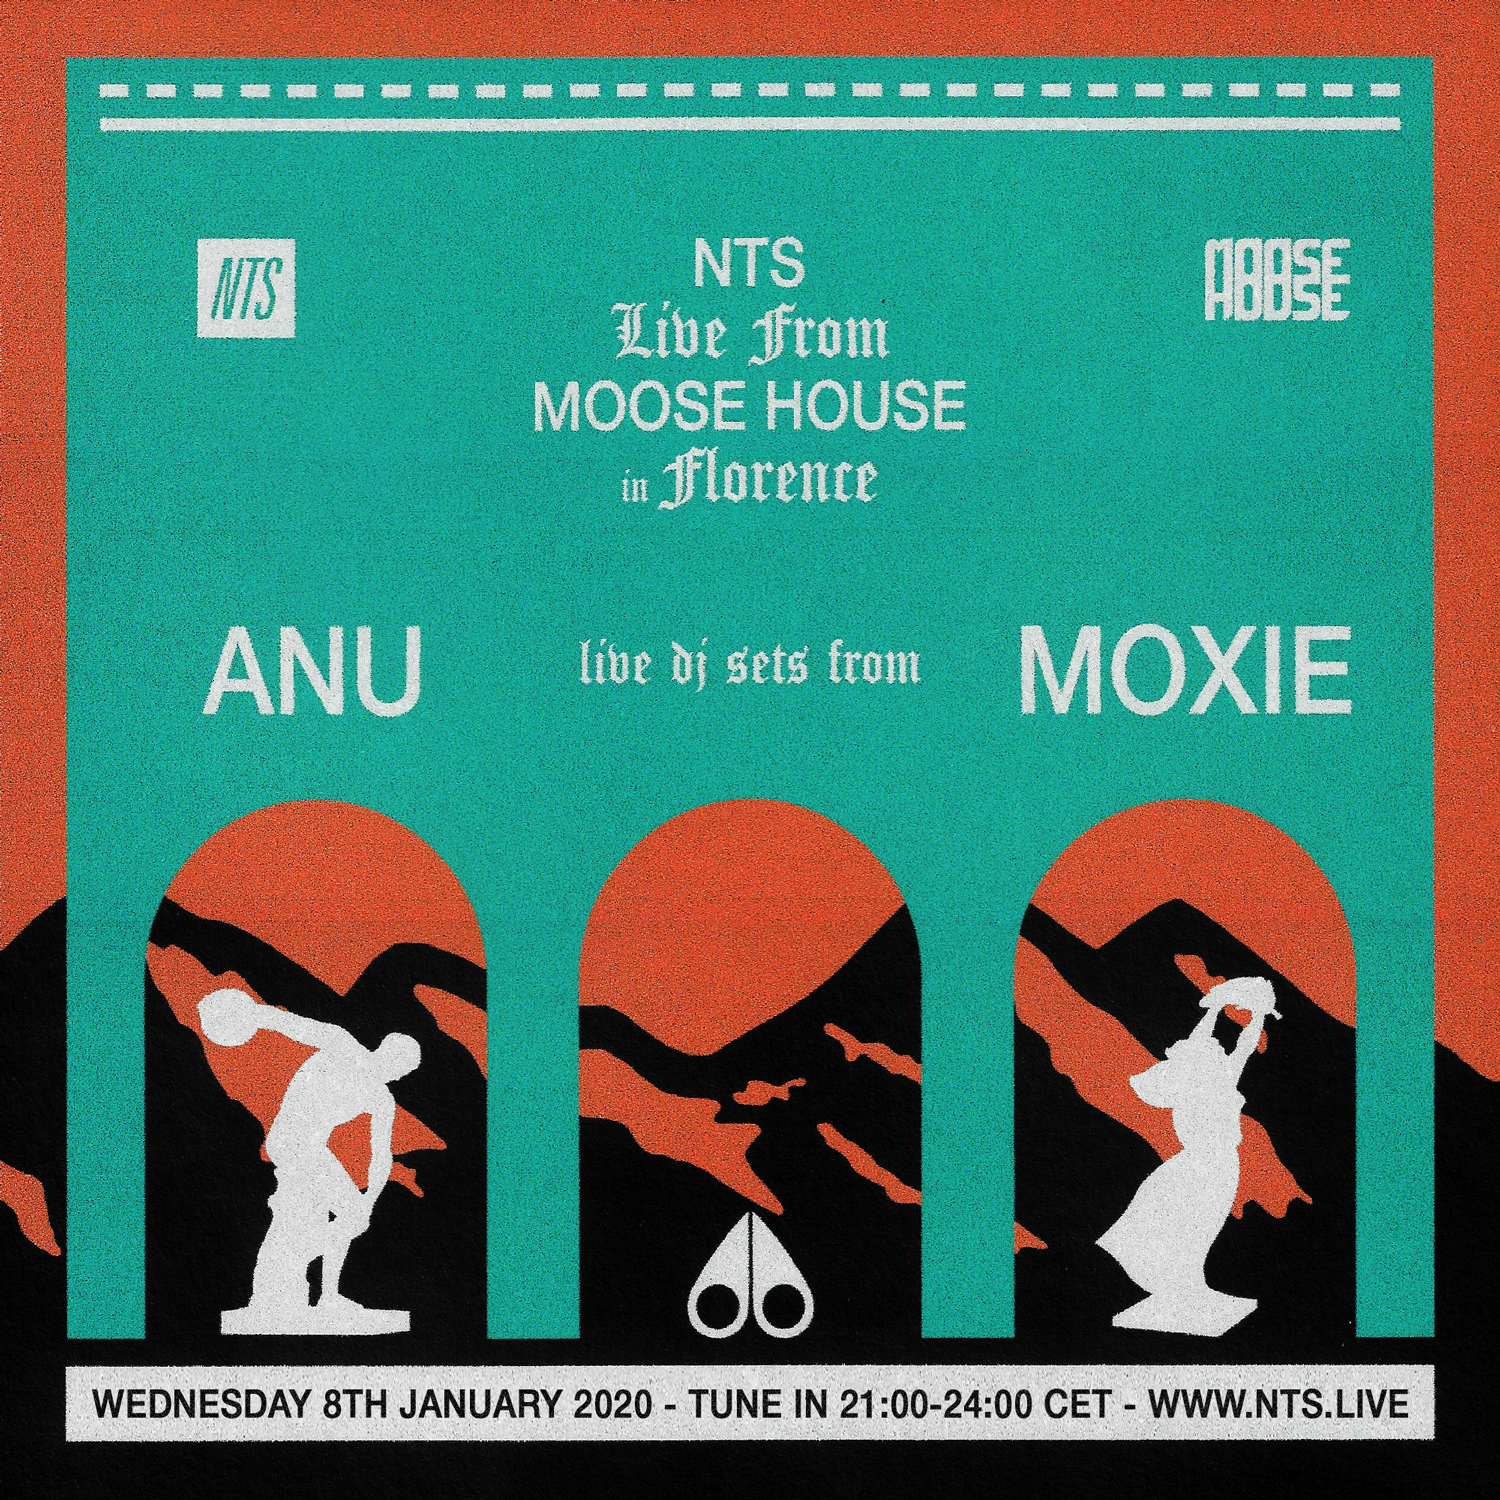 1.1 Still - NTS Live from Moose House Florence - Anu, Moxie.png